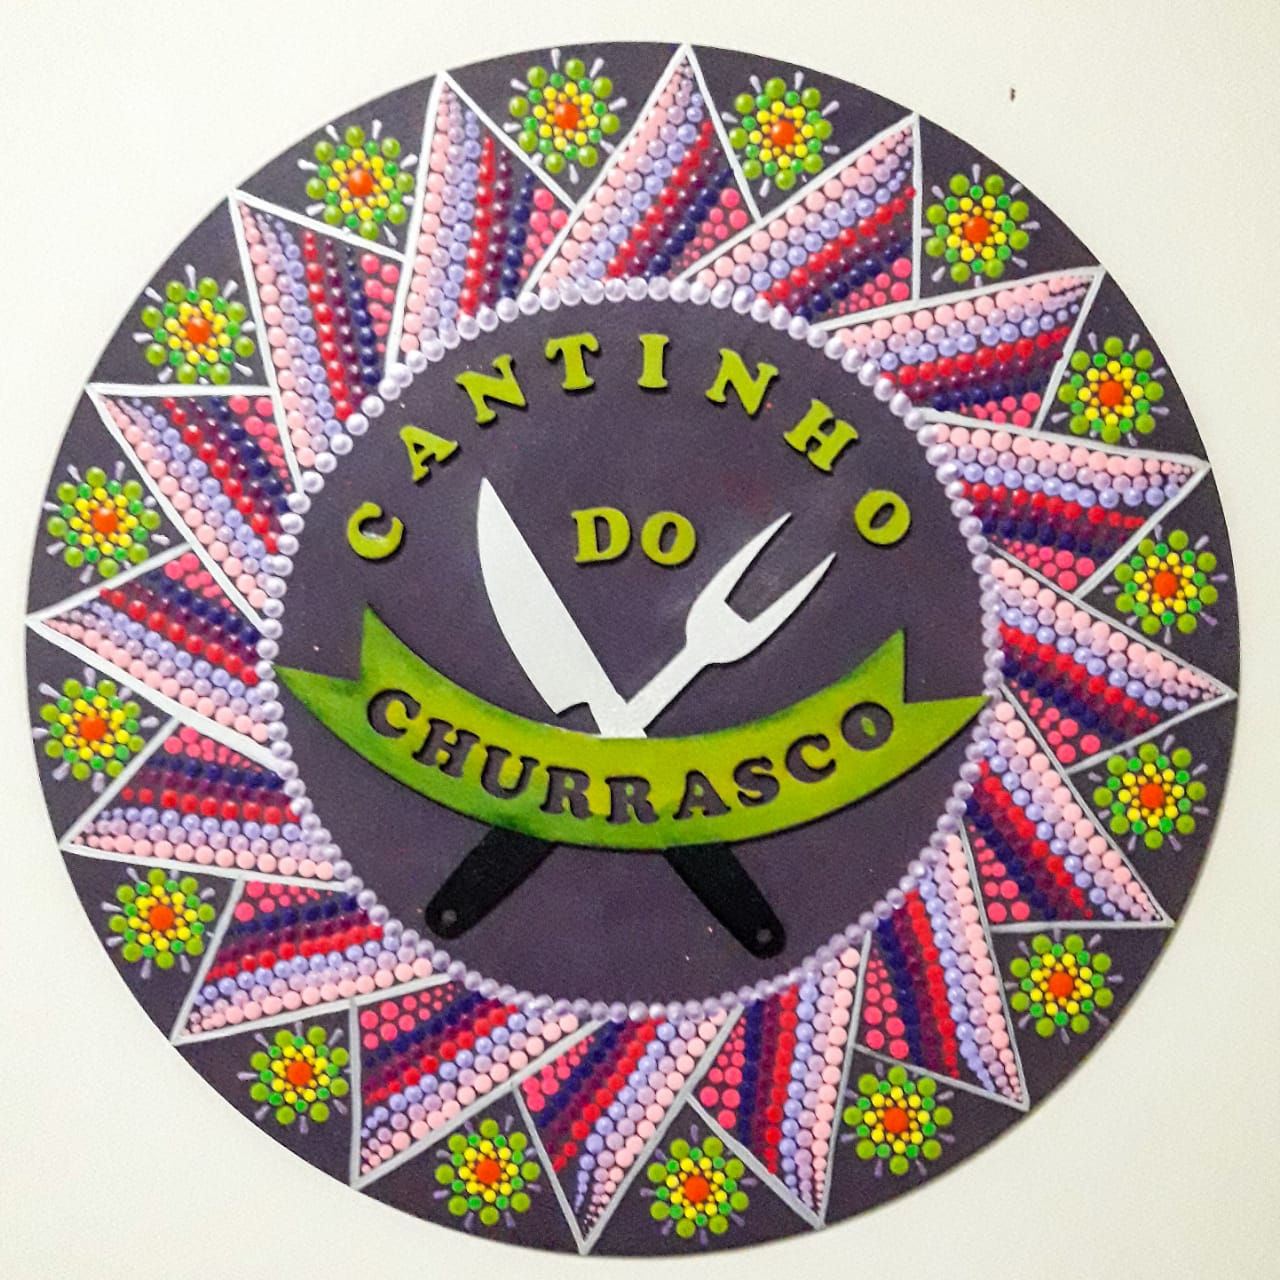 Placa Decorativa Cantinho do Churrasco Pintura Livre 35 cm CC-80